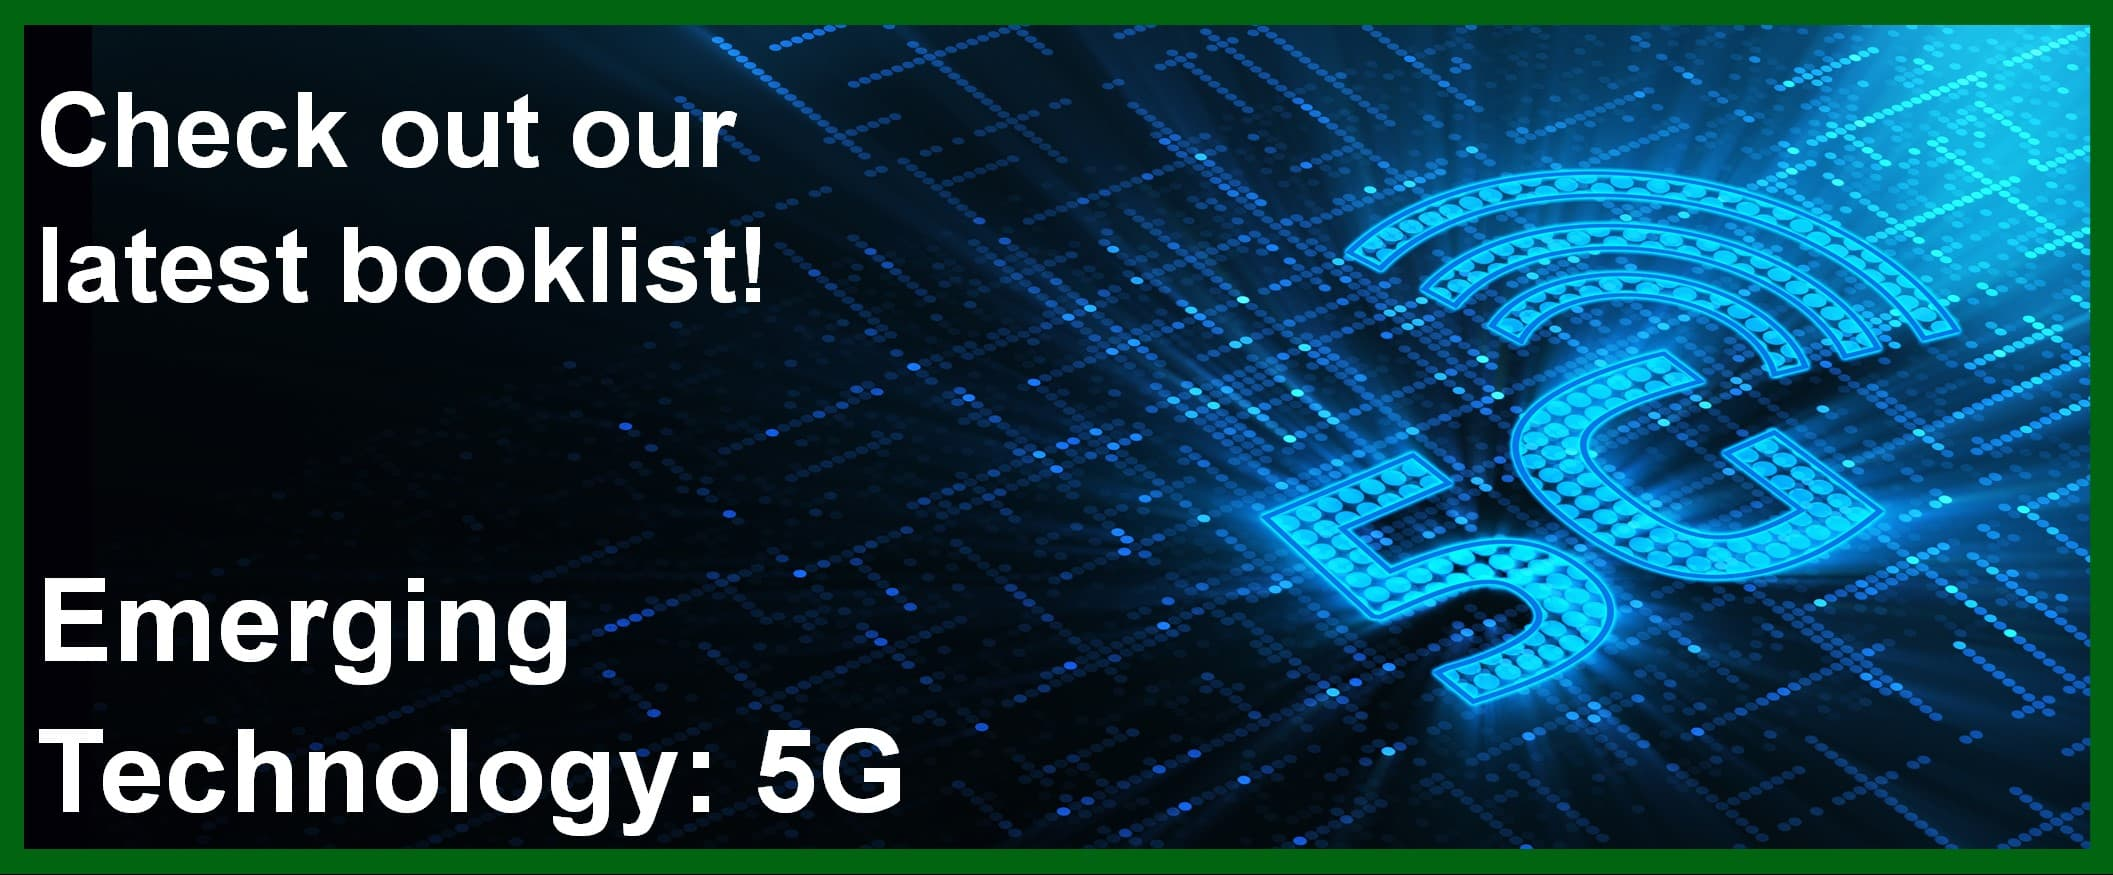 Check out our latest book list Emerging Technology 5G